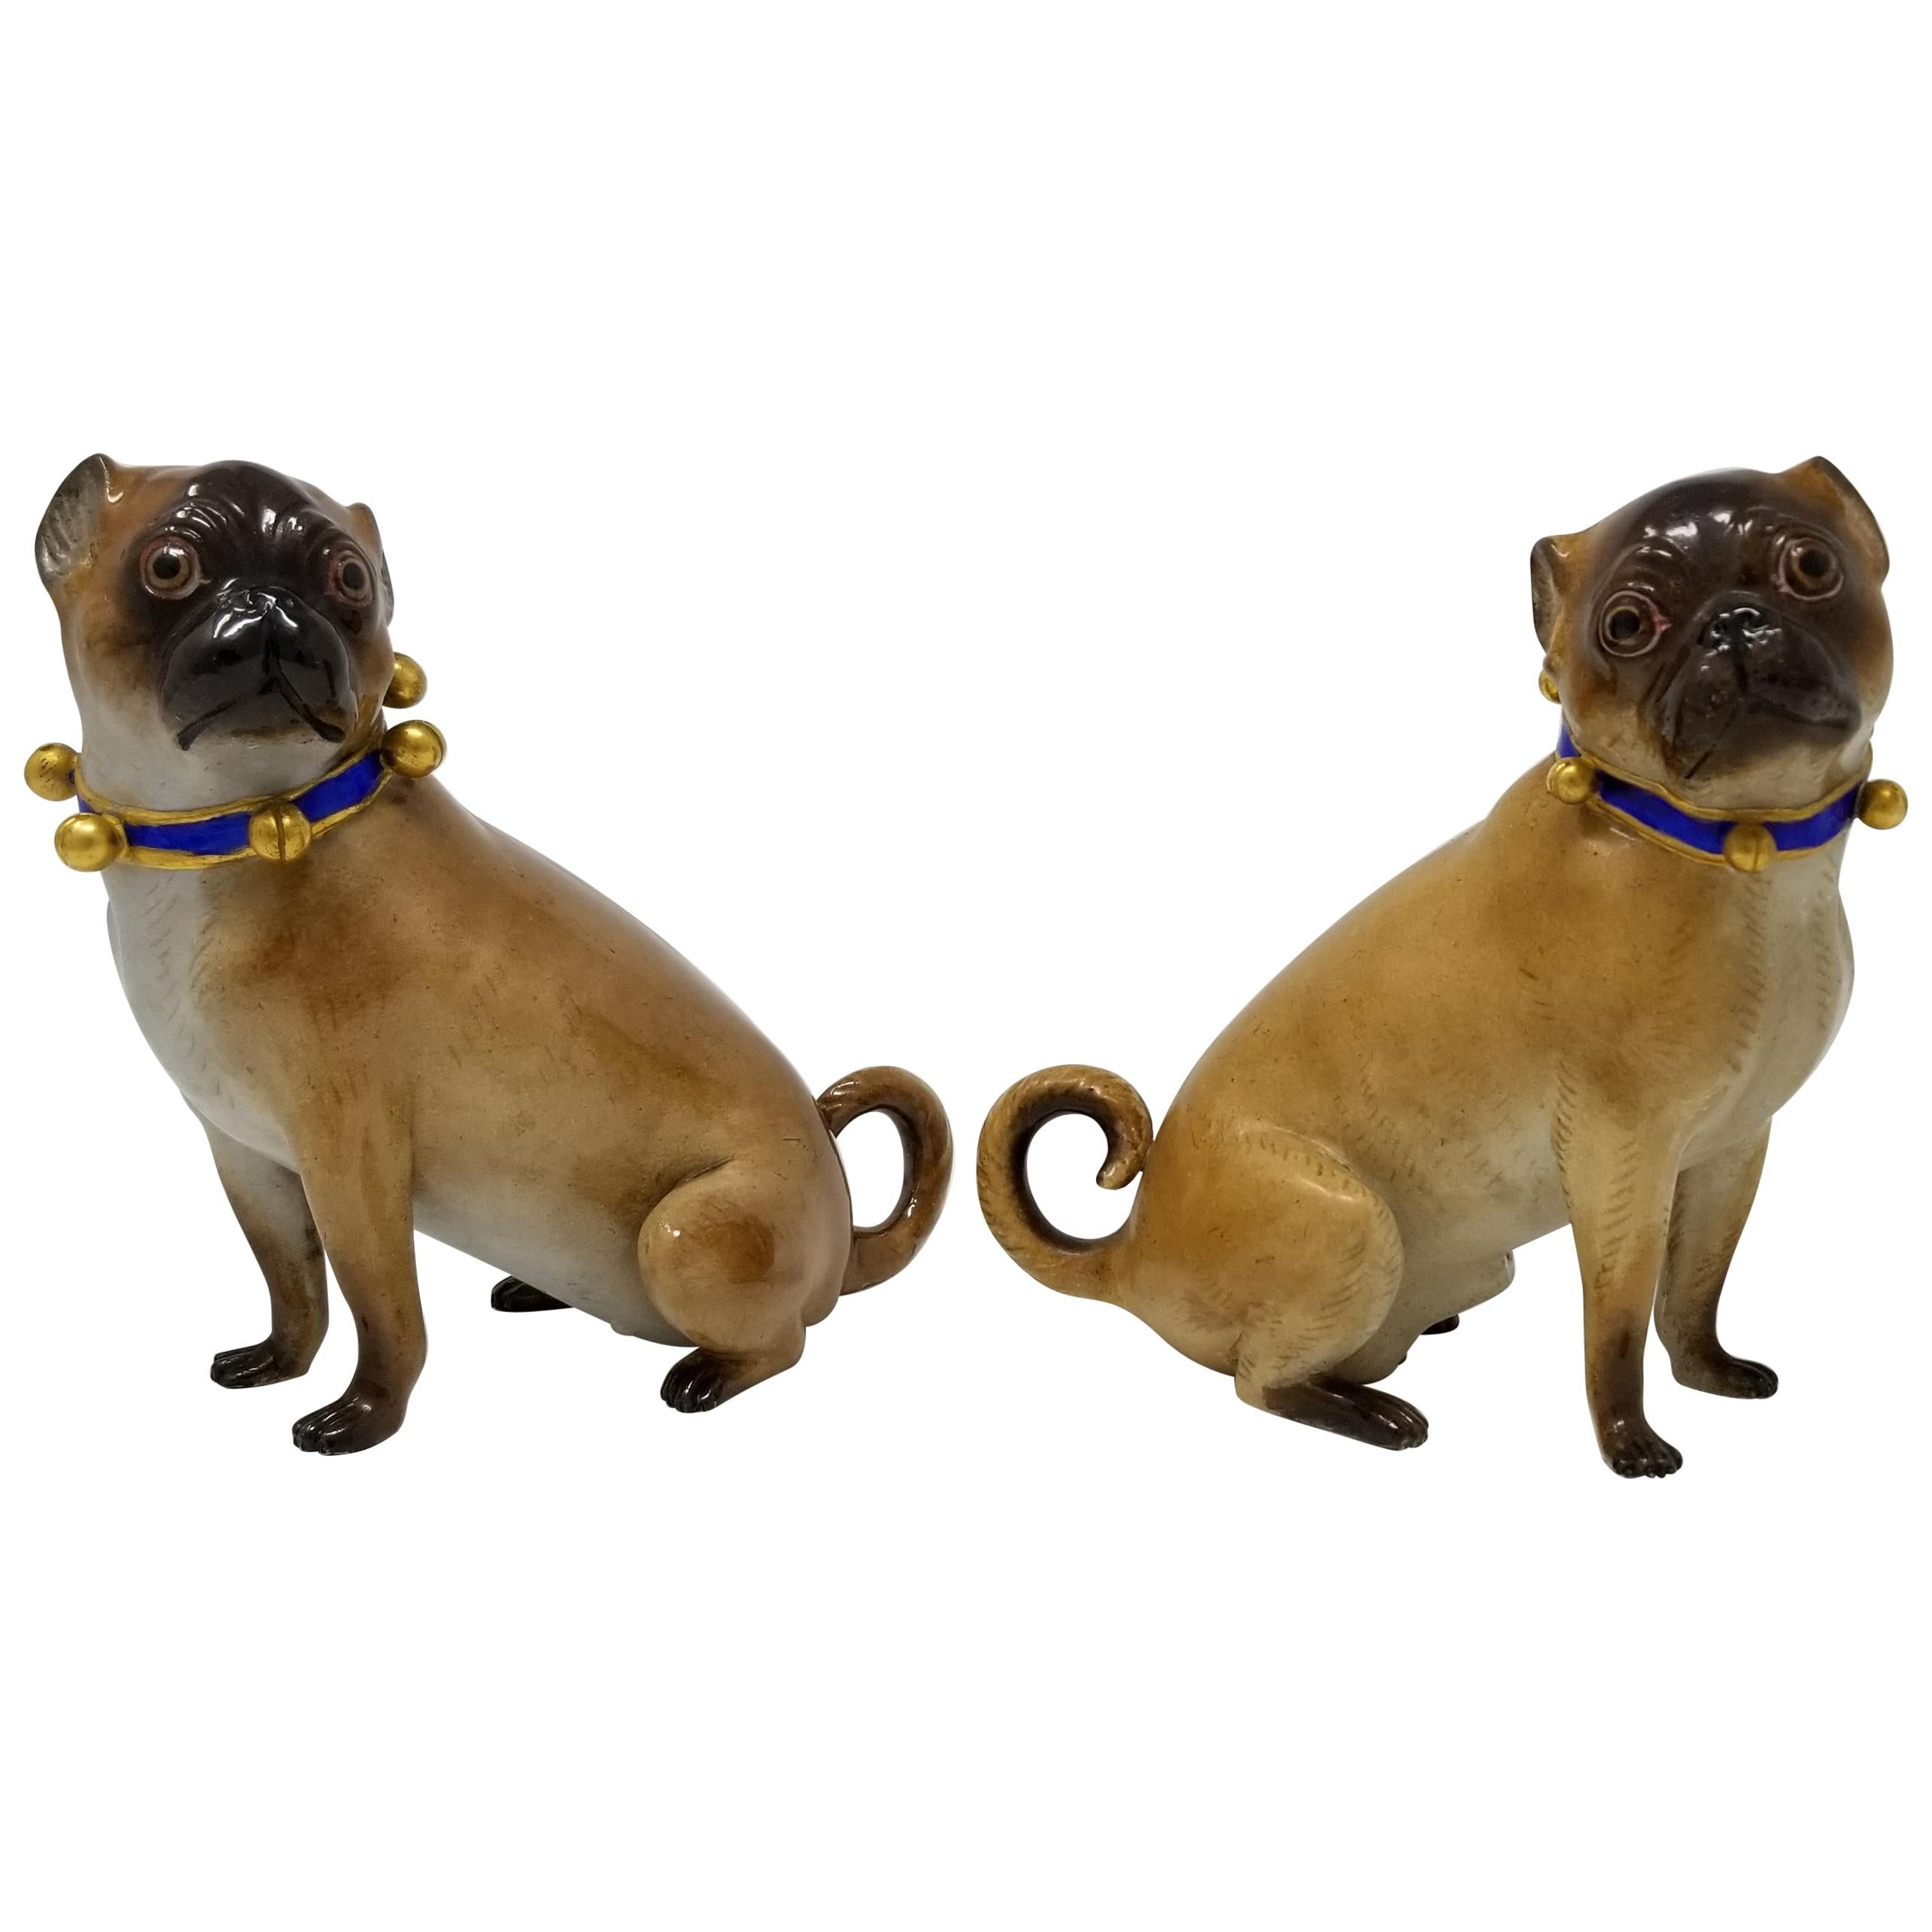 Pair of 19th Century Meissen Porcelain Figures of Pug Dogs w/ Gilt Bell Collars